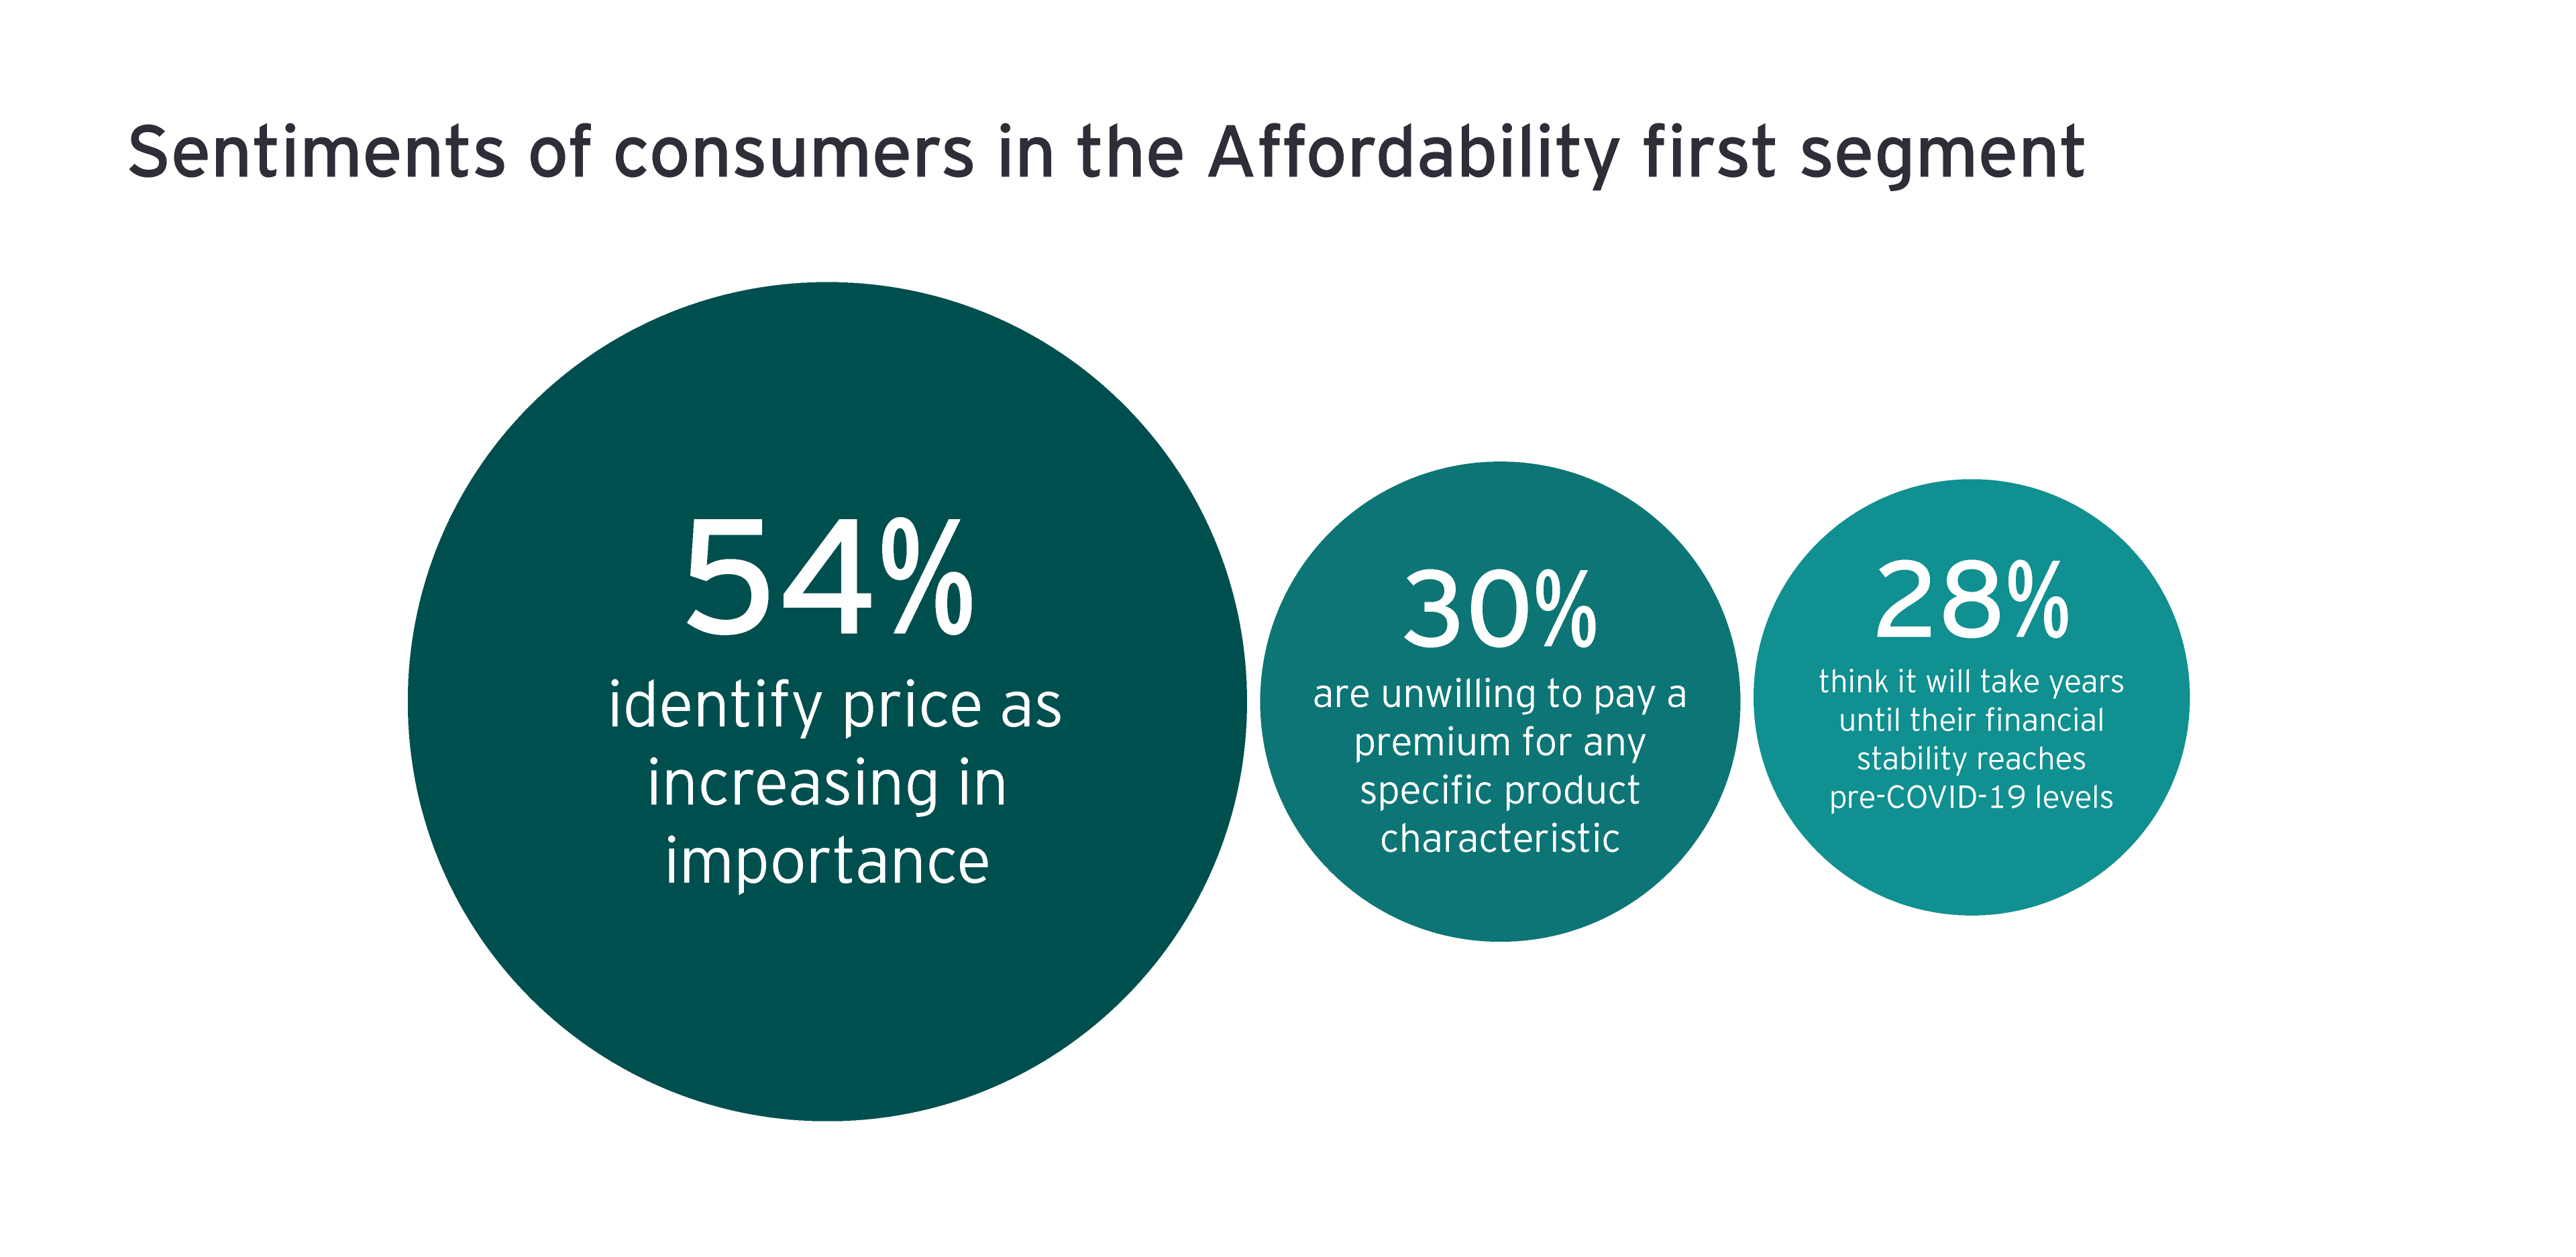 Sentiments of consumers in the Affordability first segment